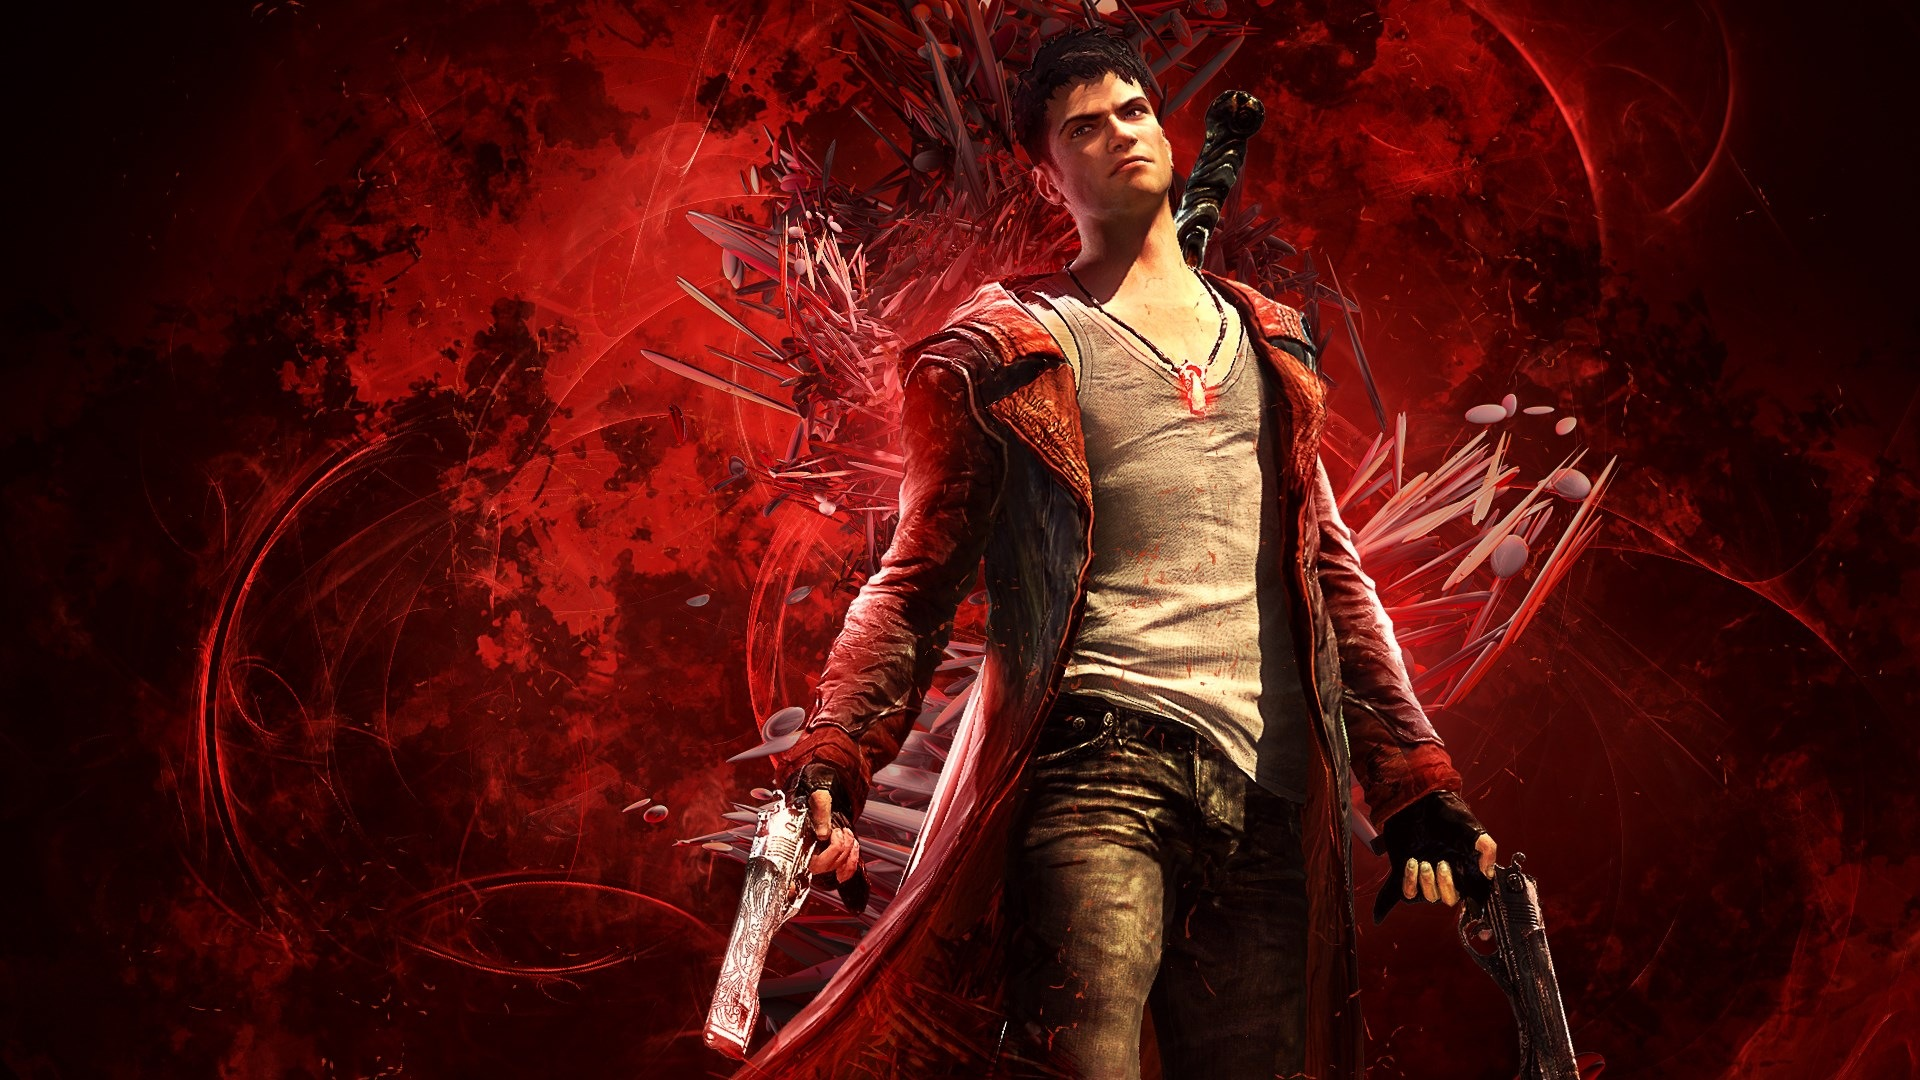 Free Download Fotos Devil May Cry Hd Wallpapers 1920x1080 For